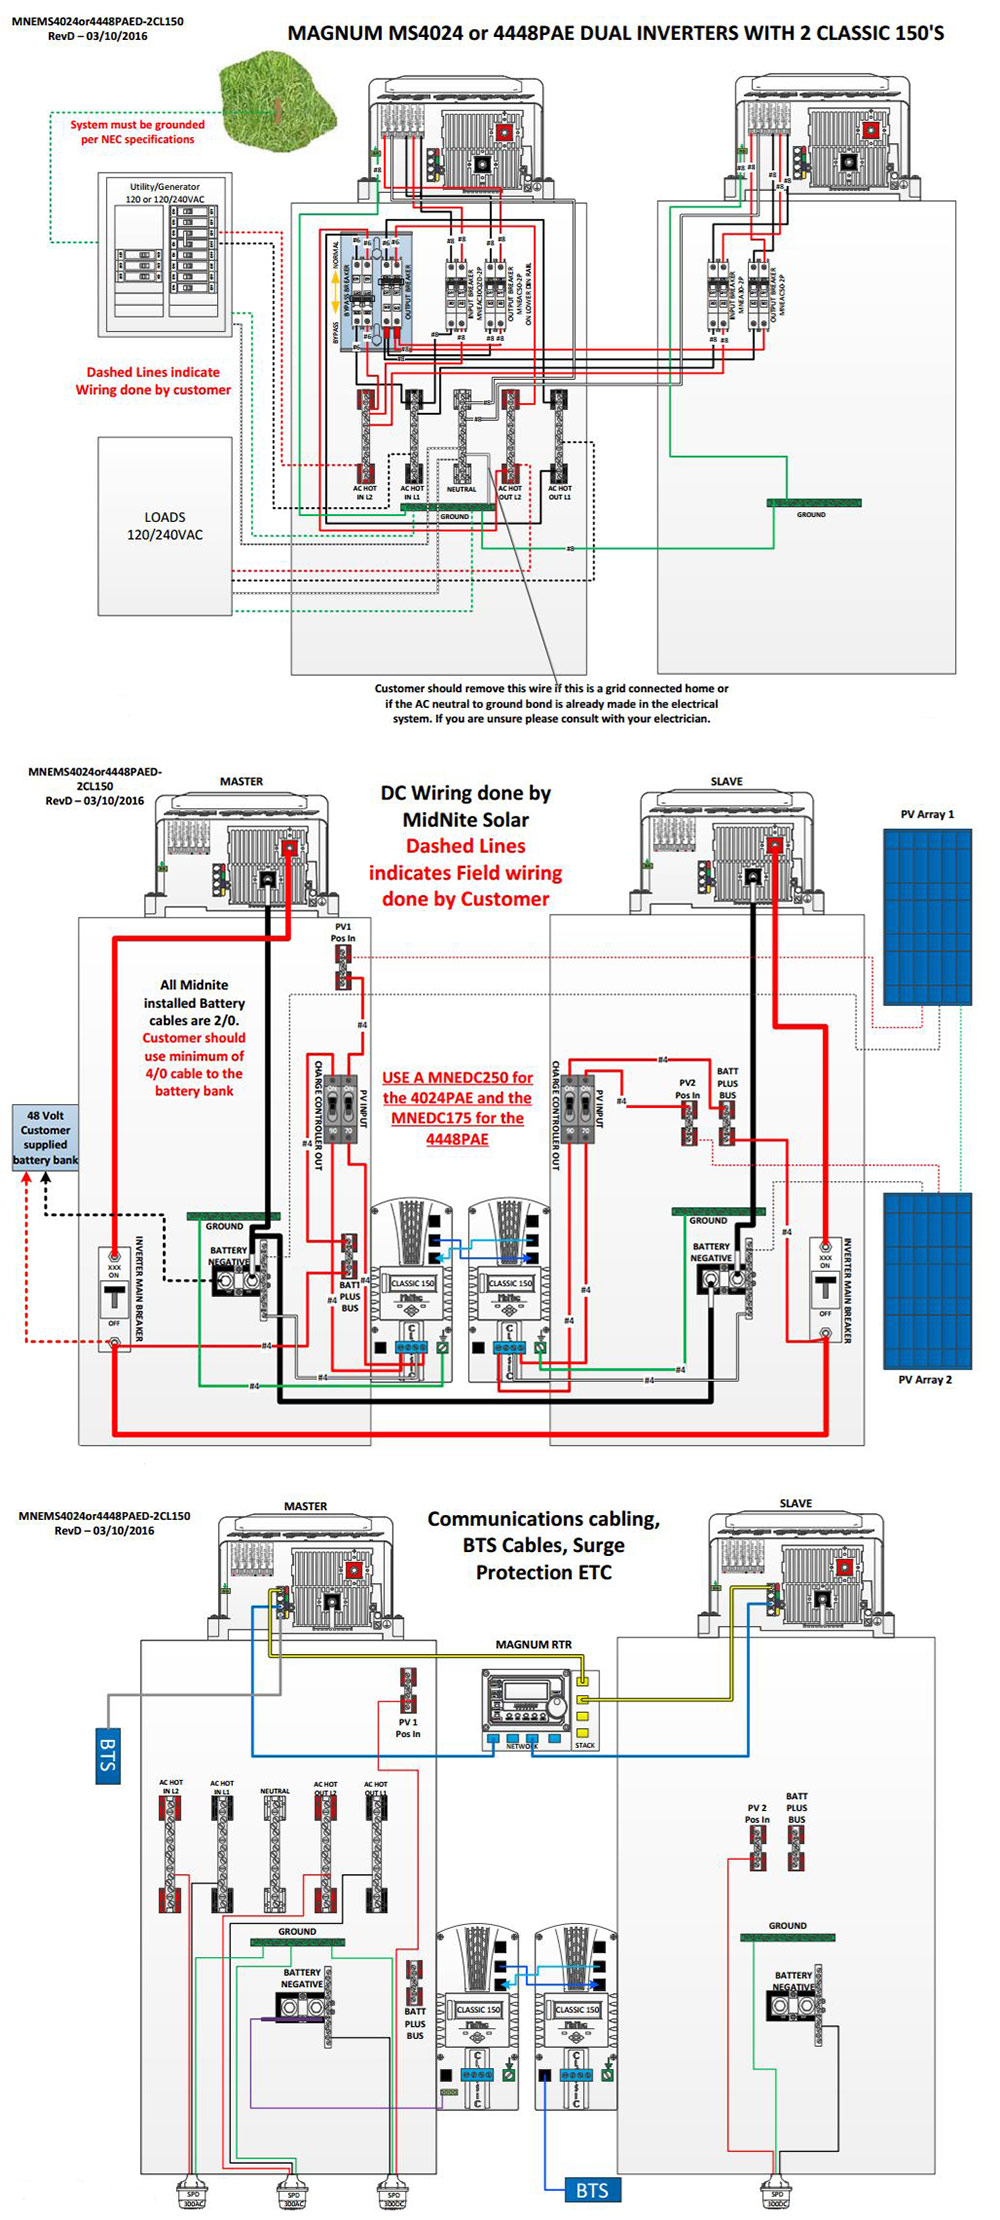 Pre-Wired Dual MS4024PAE Inverter w/ CL150 Controller on battery bank connectors, battery for wind turbine, battery bank box, battery charger schematic diagram, battery bank assembly, battery bank charger, battery bank cabinet, battery cable connectors, solar battery bank diagram, battery bank cover, battery bank voltage, 12 volt battery equalization diagram, battery bank transformer, battery bank parts, 12 volt 3 battery diagram, 24 volt battery diagram, battery bank switch, batteries in series diagram, battery to starter diagram, battery bank for solar panels,